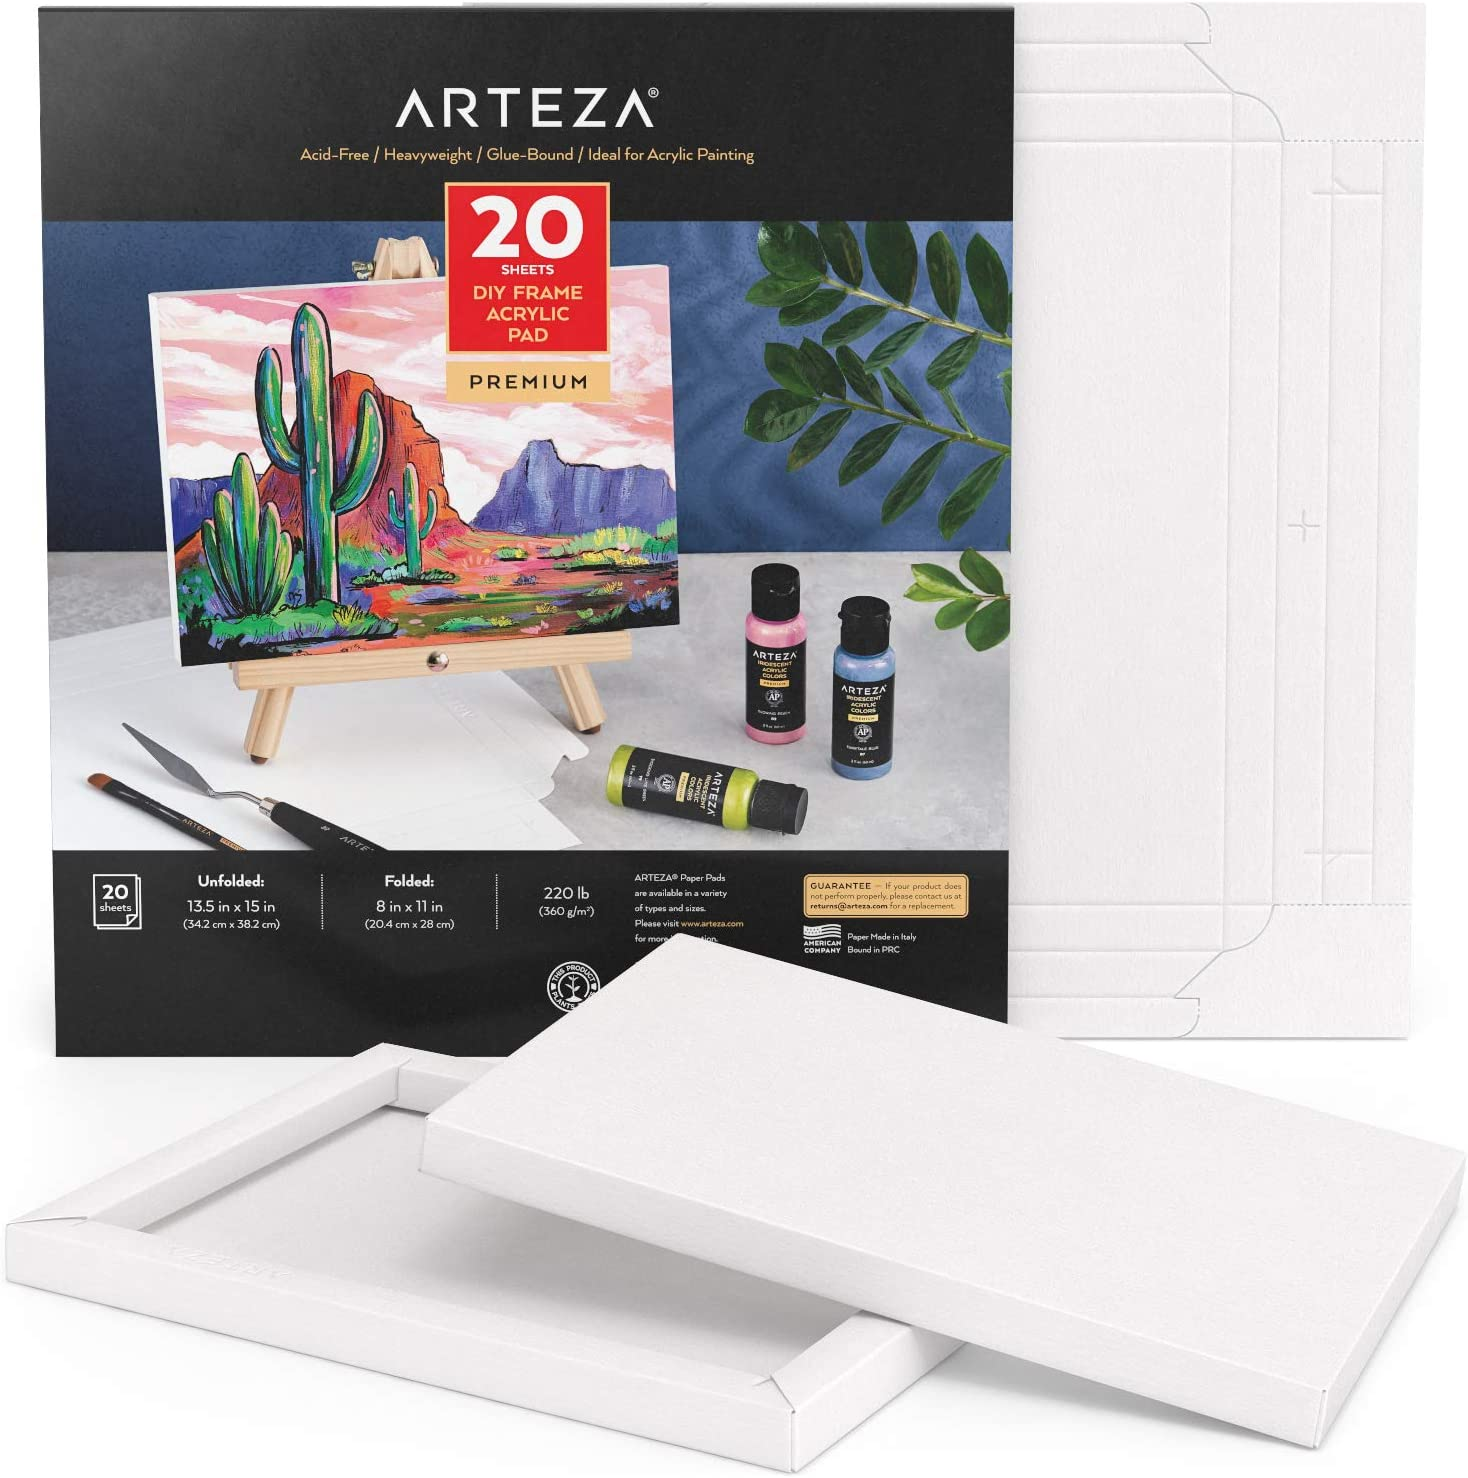 Arteza Acrylic Paper Foldable Regular discount Canvas Inches 20 8x11 Sheets Pad trend rank